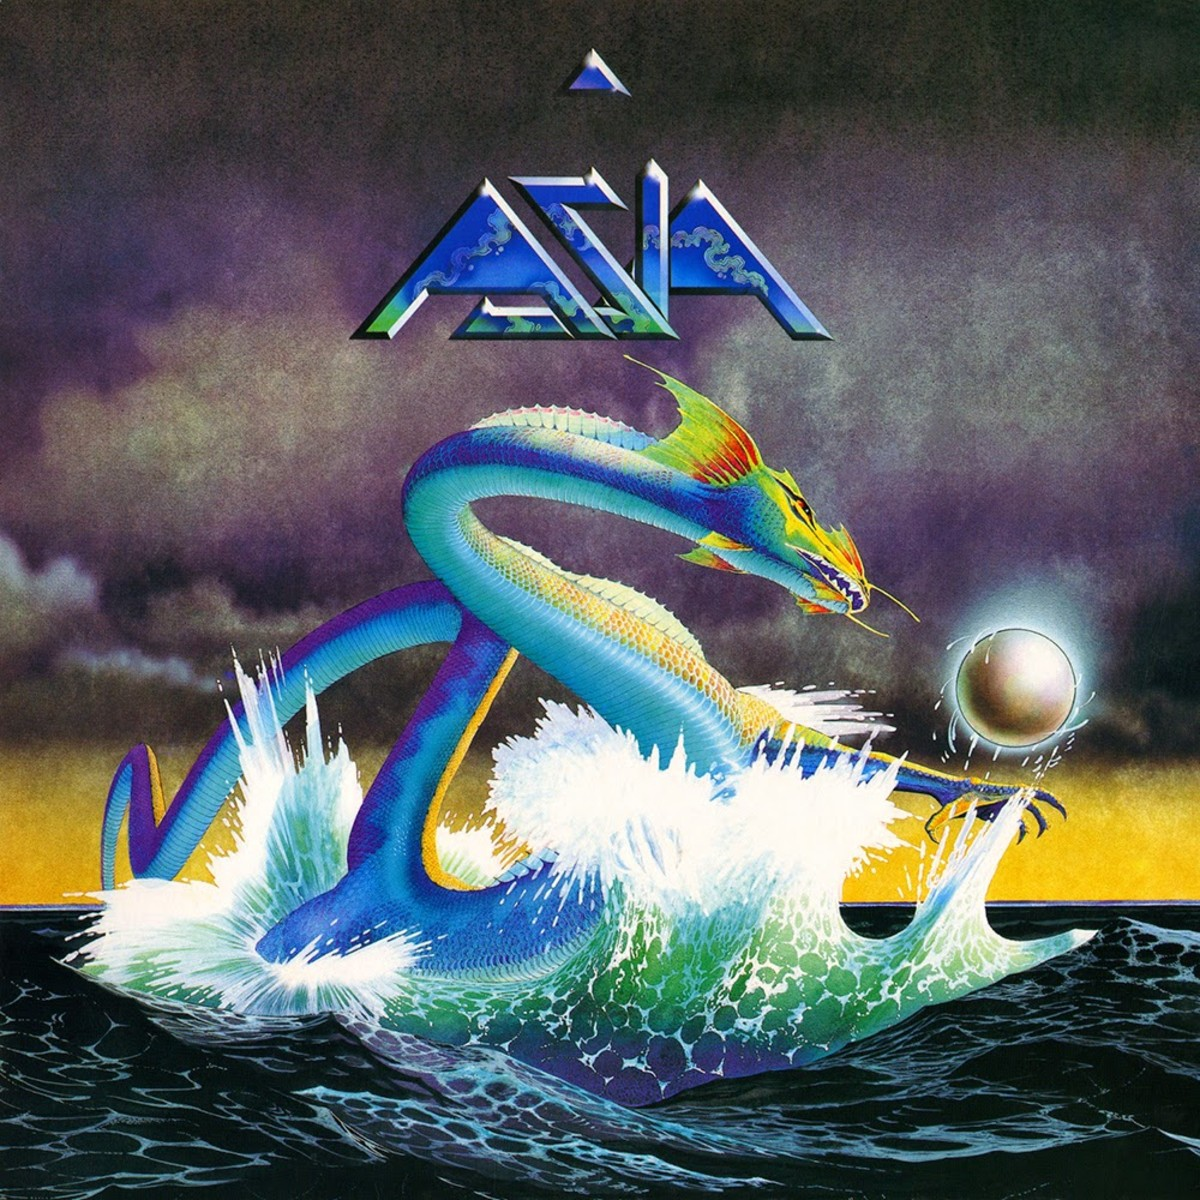 "Asia ""Asia"" Geffen Records GEF 5577 12"" LP Vinyl Record, UK Pressing (1982) Album Cover Art & Design by Roger Dean"